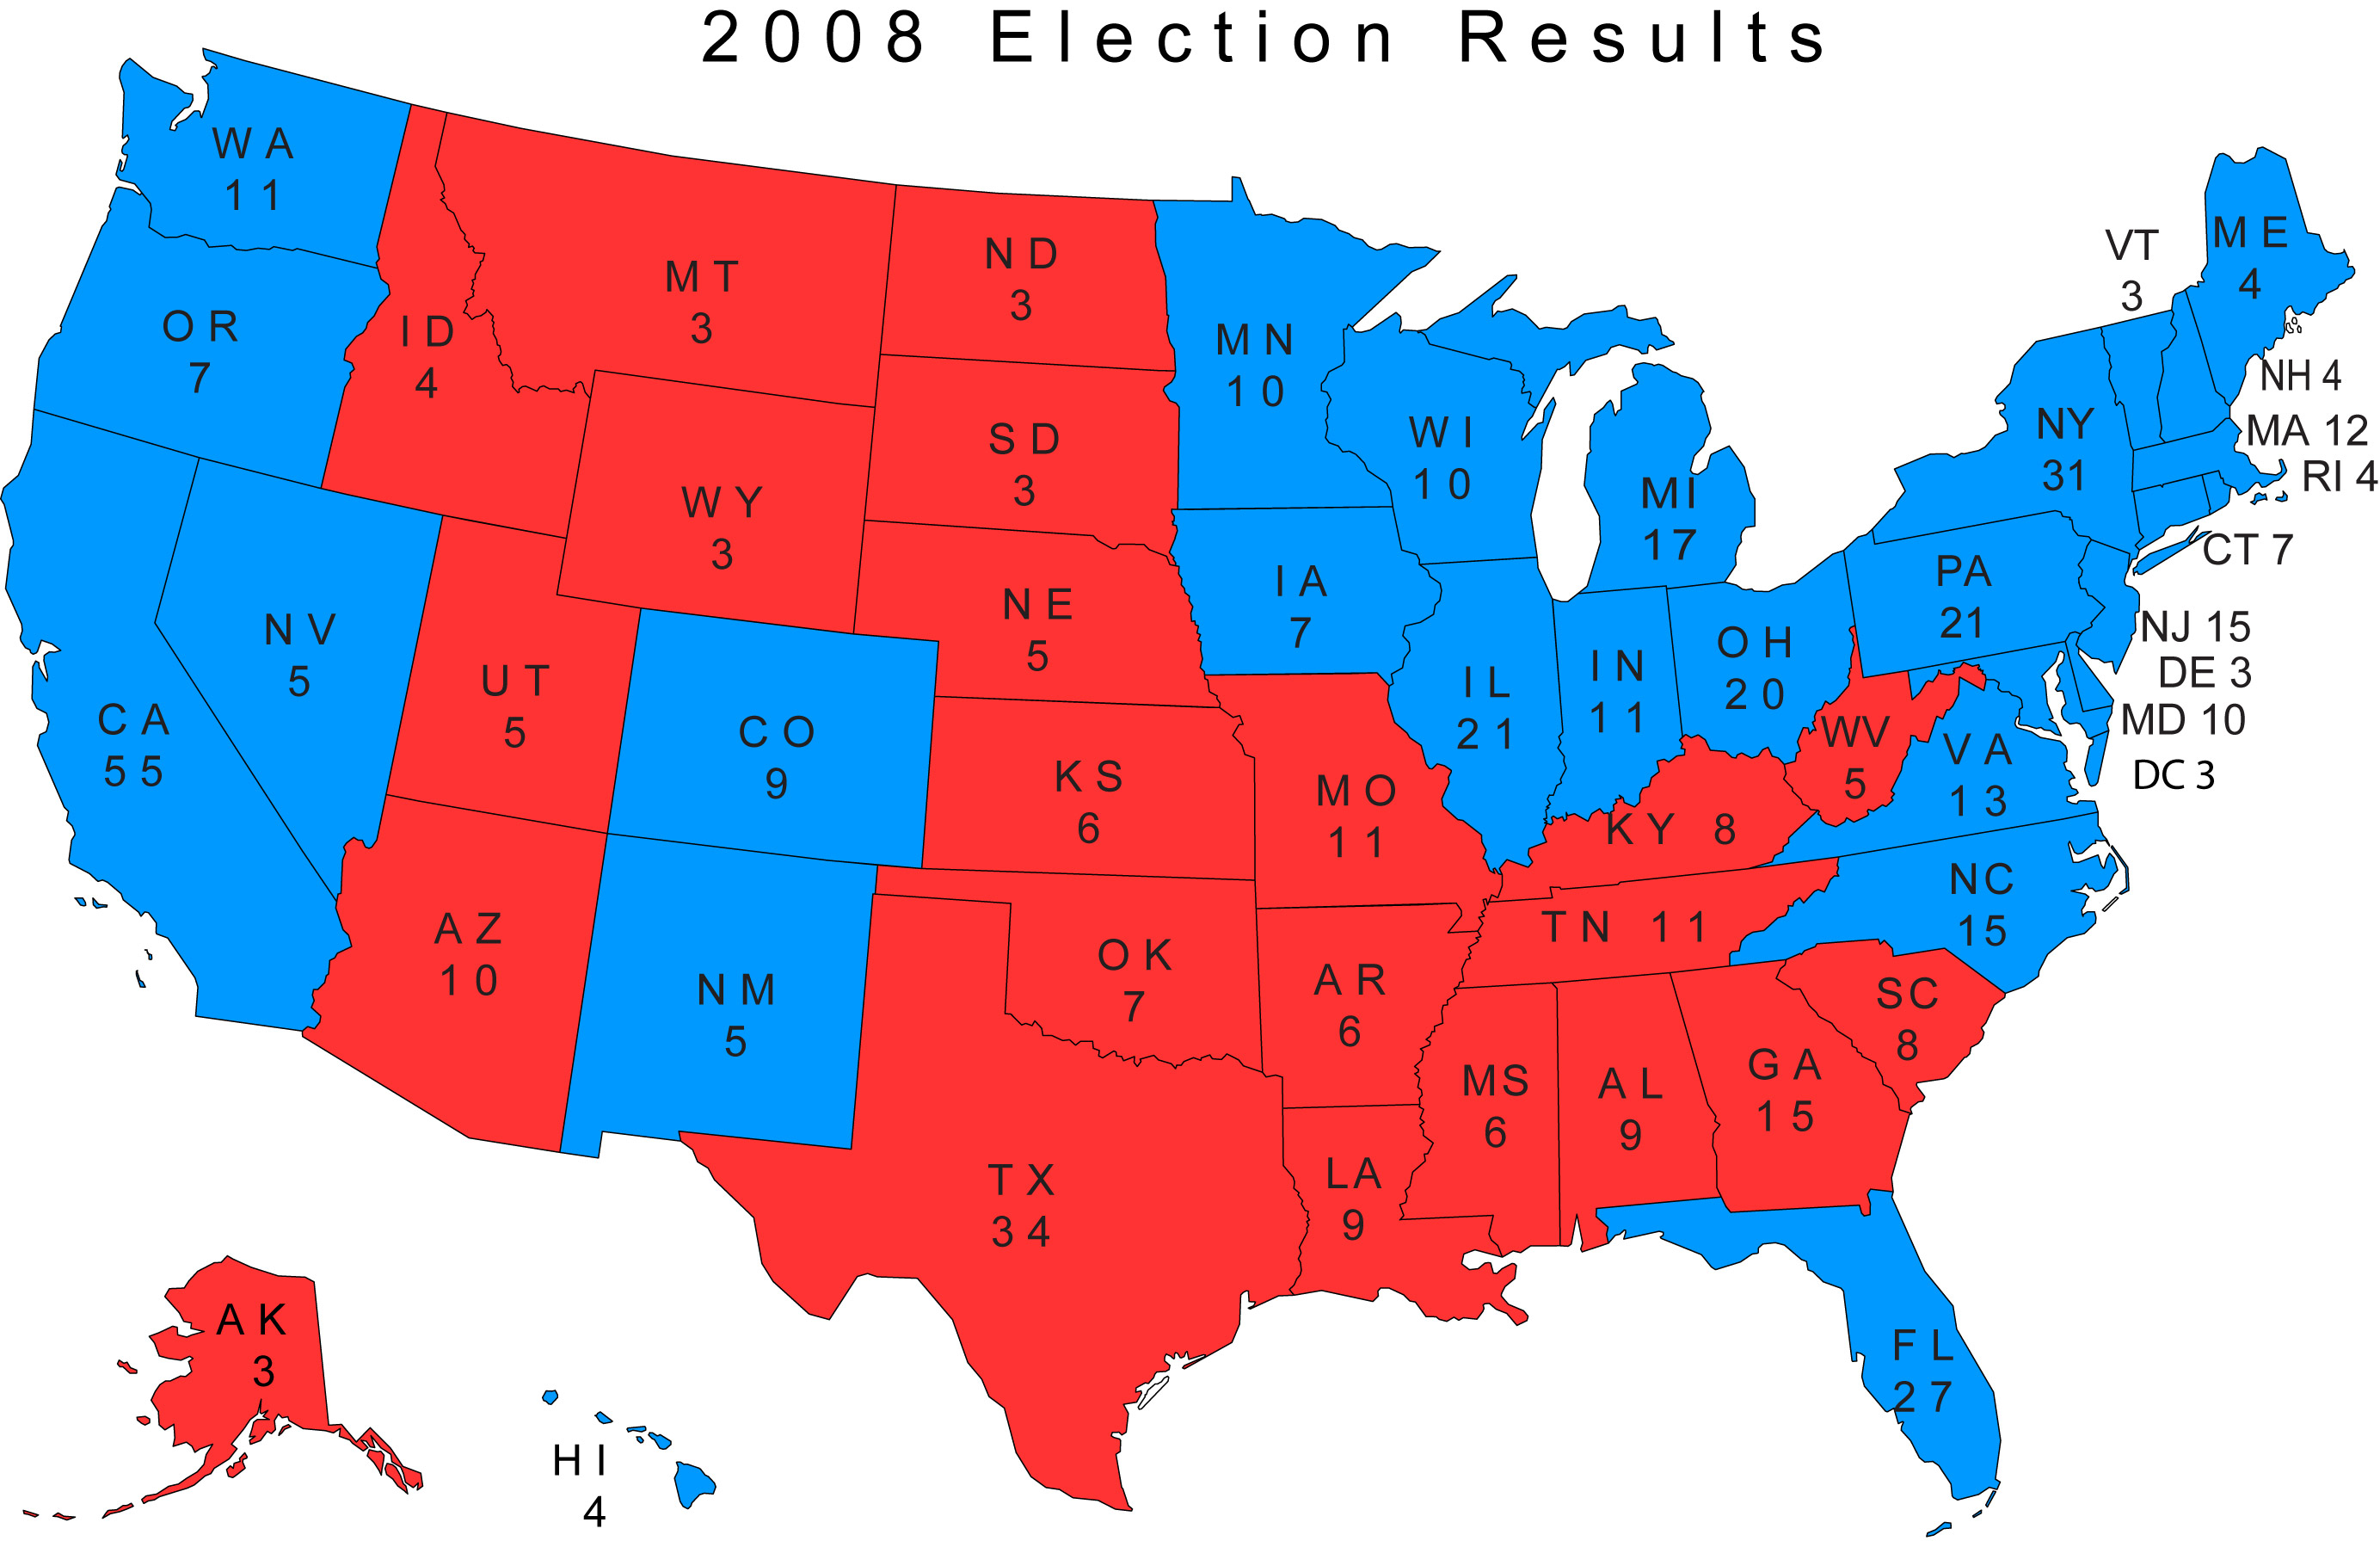 2008 election results